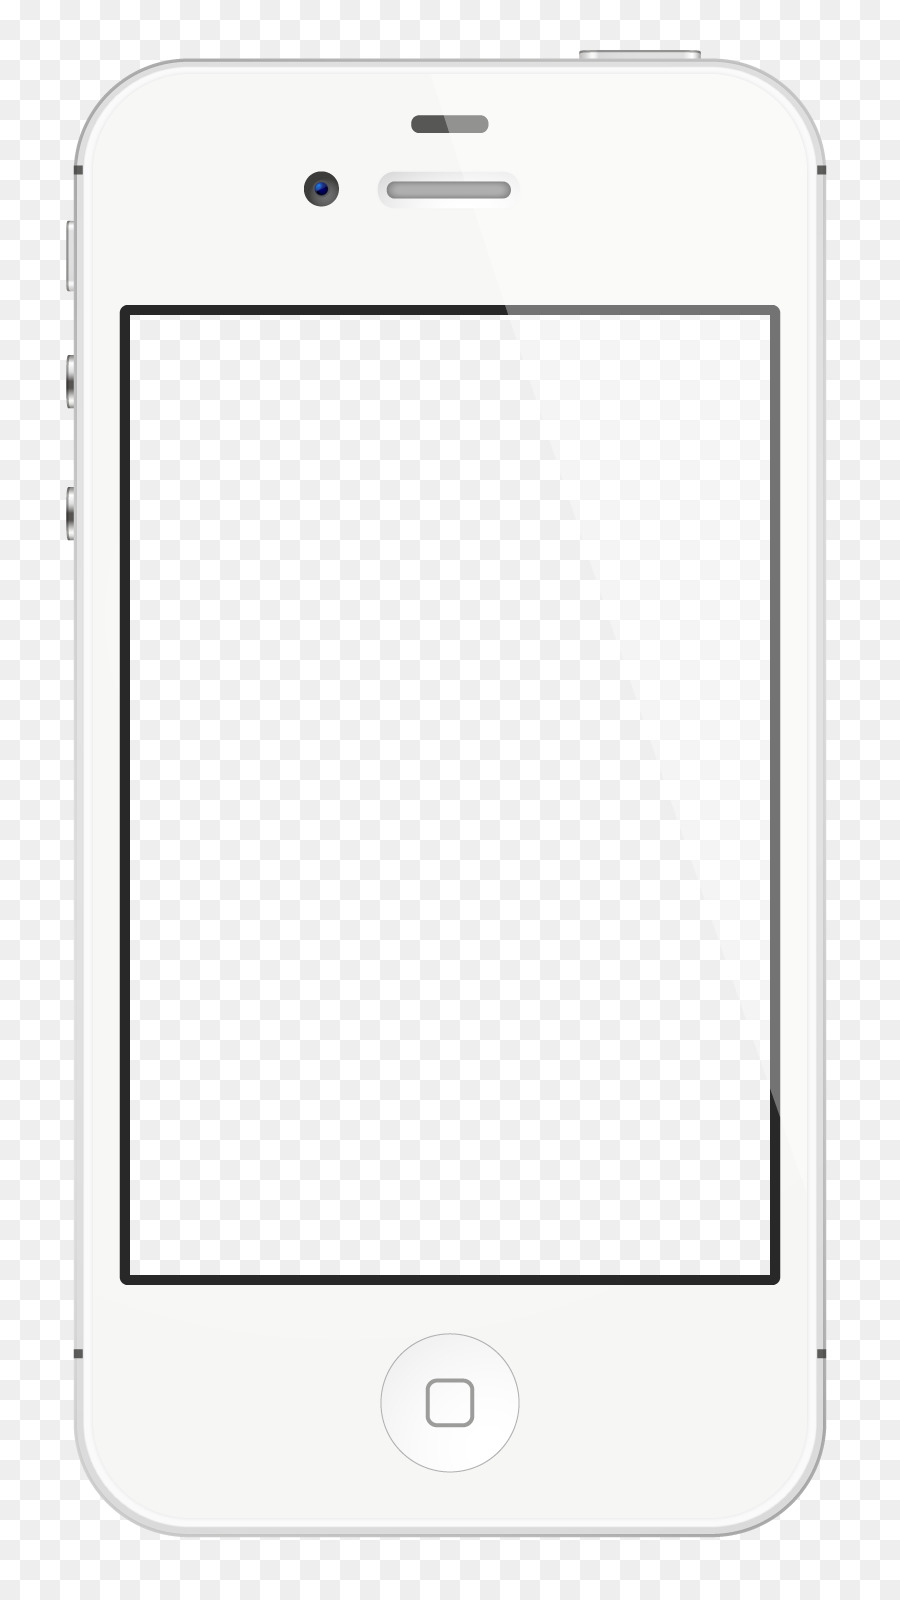 Iphone Portable Communications Device Technology Gadget Template Png 900 1600 Free Transpa